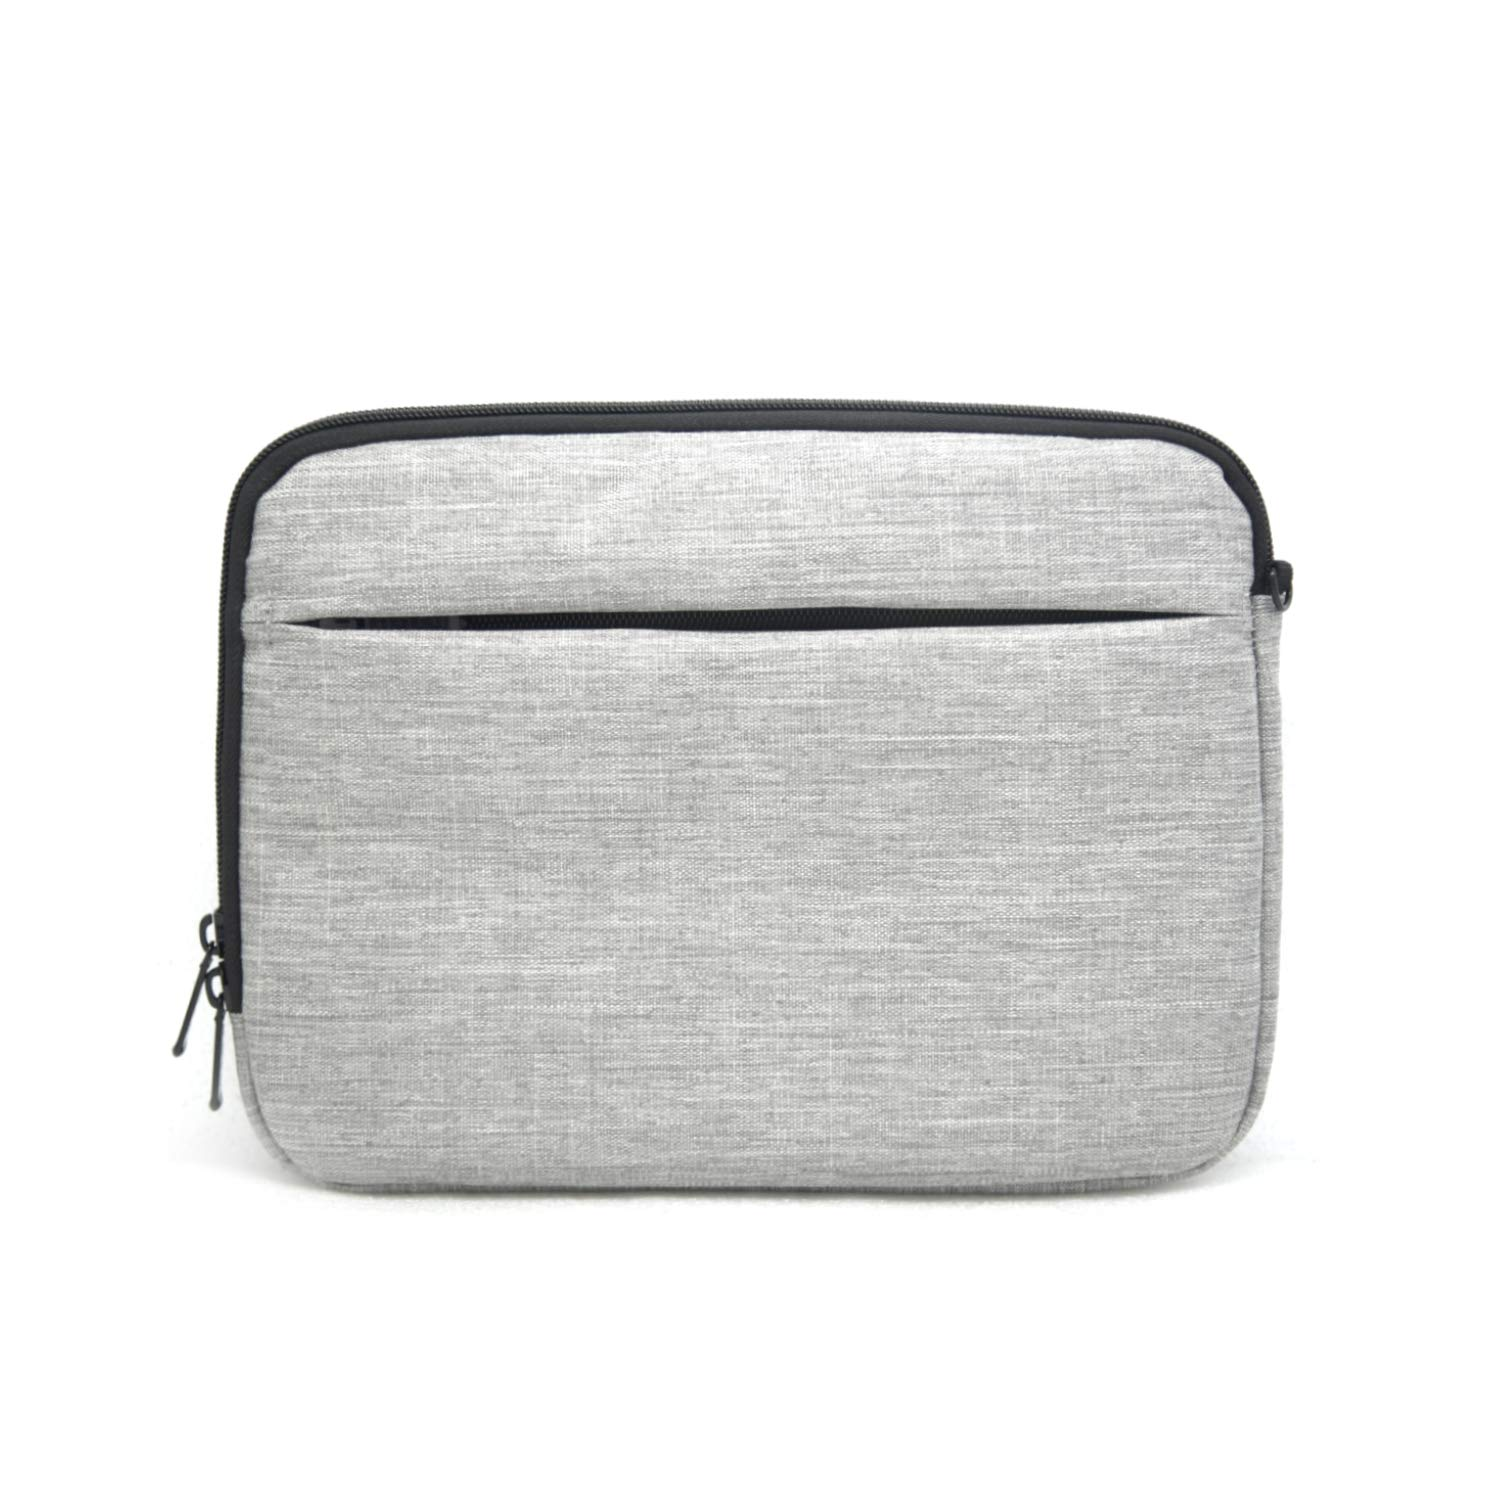 Protective Cover Bag for Apple iPad Air//Pro 11 10.5 10.1 9.7 Gen 2 3 4 Android Galaxy Tab Patu Portable 9-11 Inch Tablet Sleeve Case Gray Accessories Organizer Document Pocket